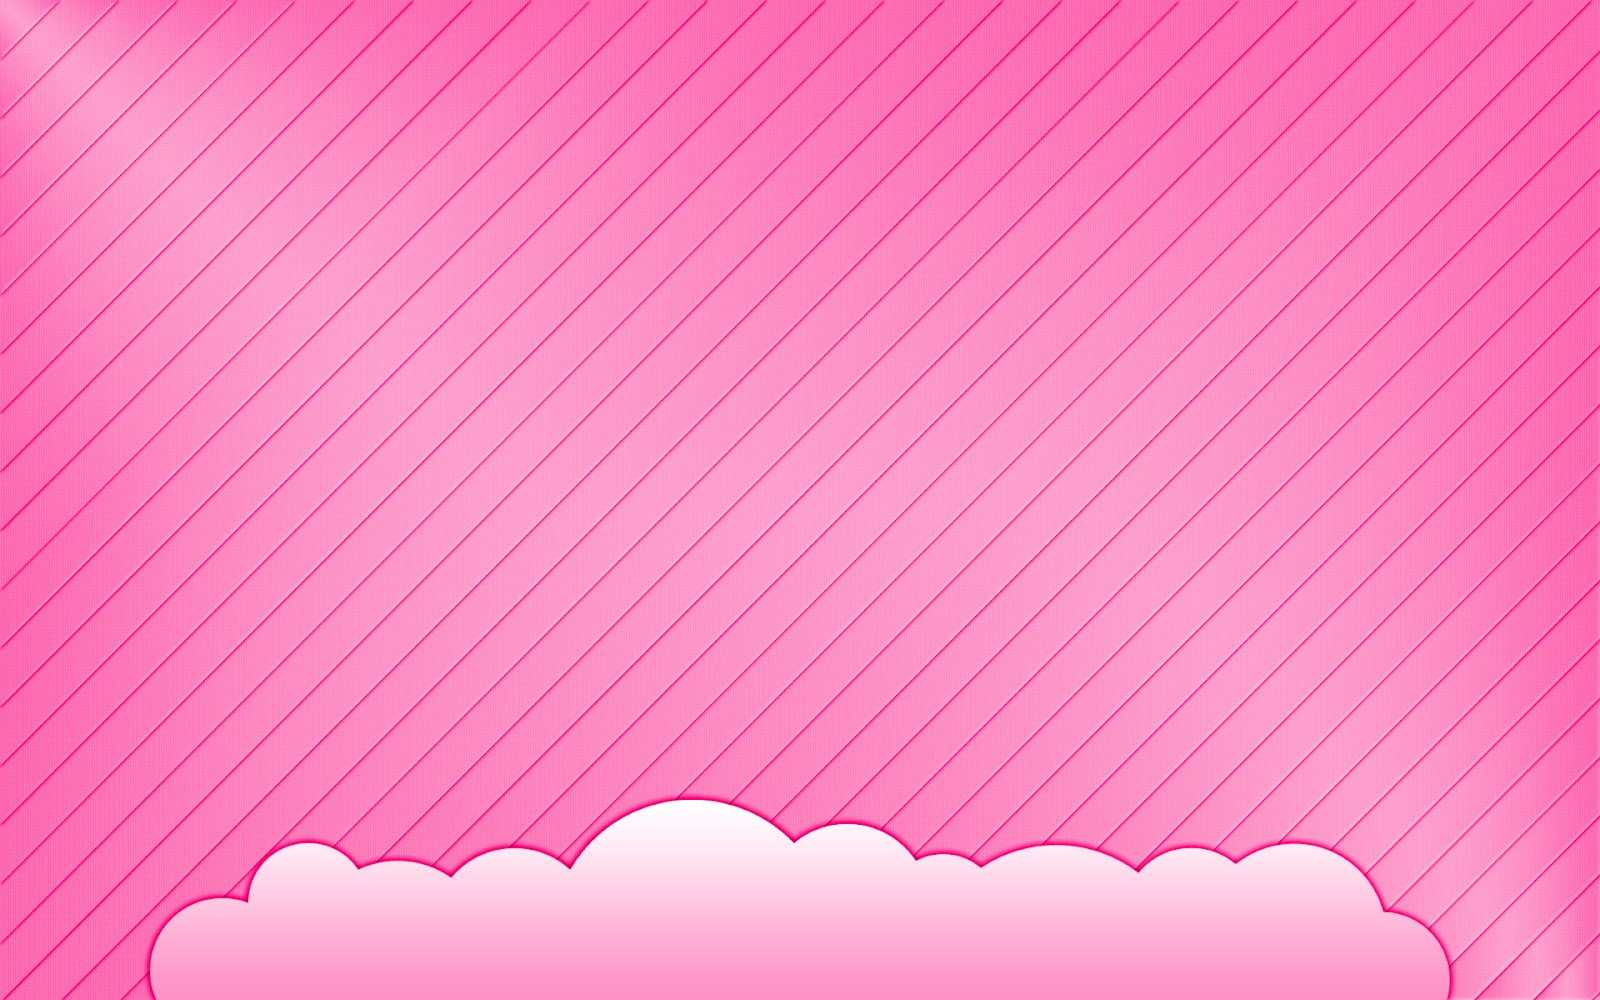 Pink background for powerpoint